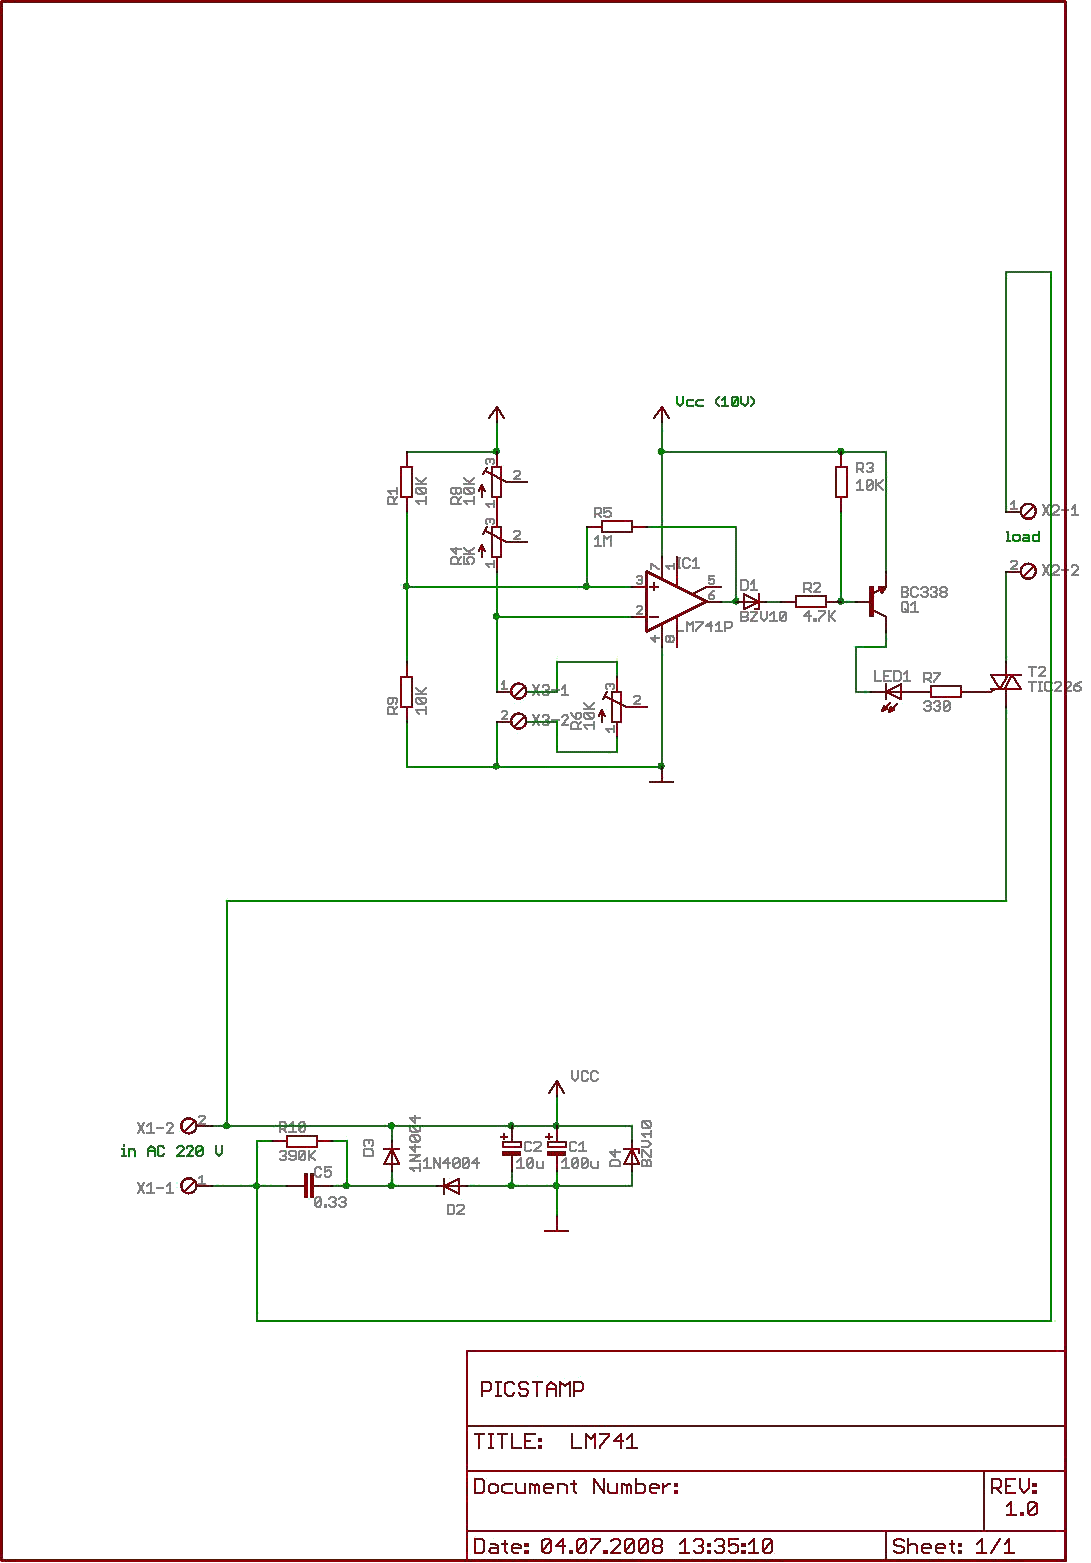 Craigs Thermostat Circuits Pdf Basic Electronic Op Amp Bat Detector Pcb Design